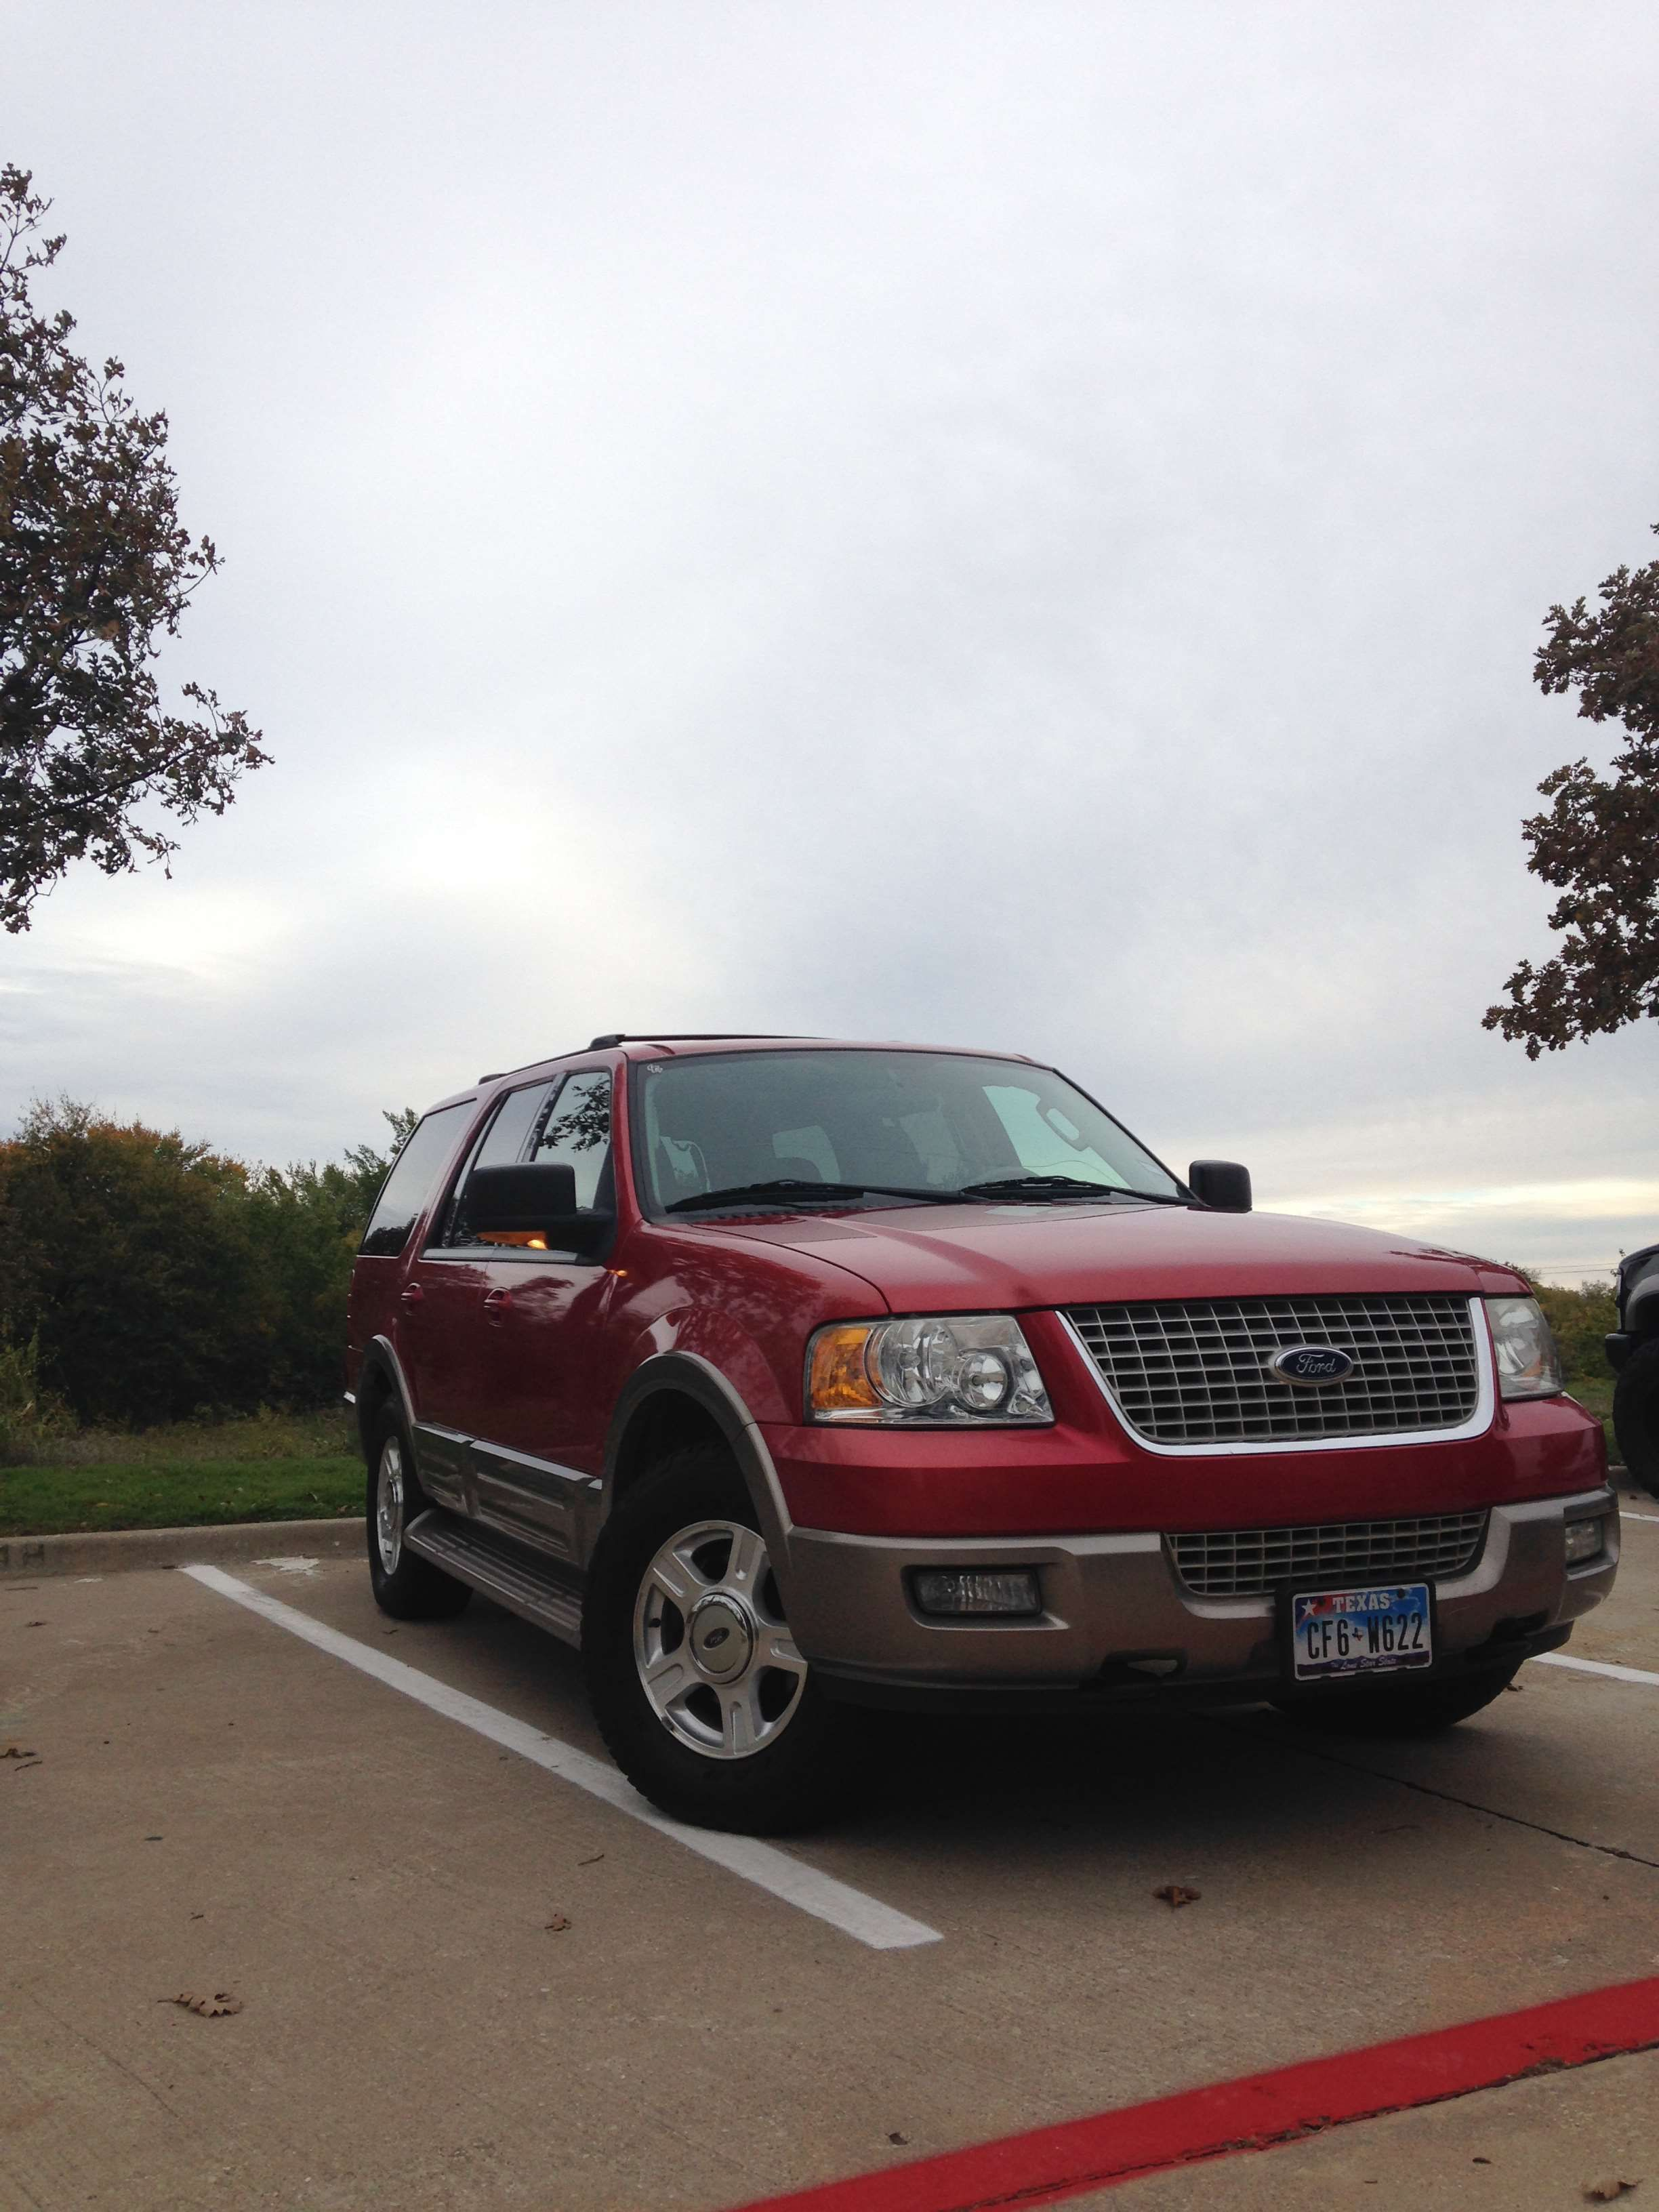 Make: Ford Model: Expedition Year: 2003 Body Style: SUV Exterior Color: